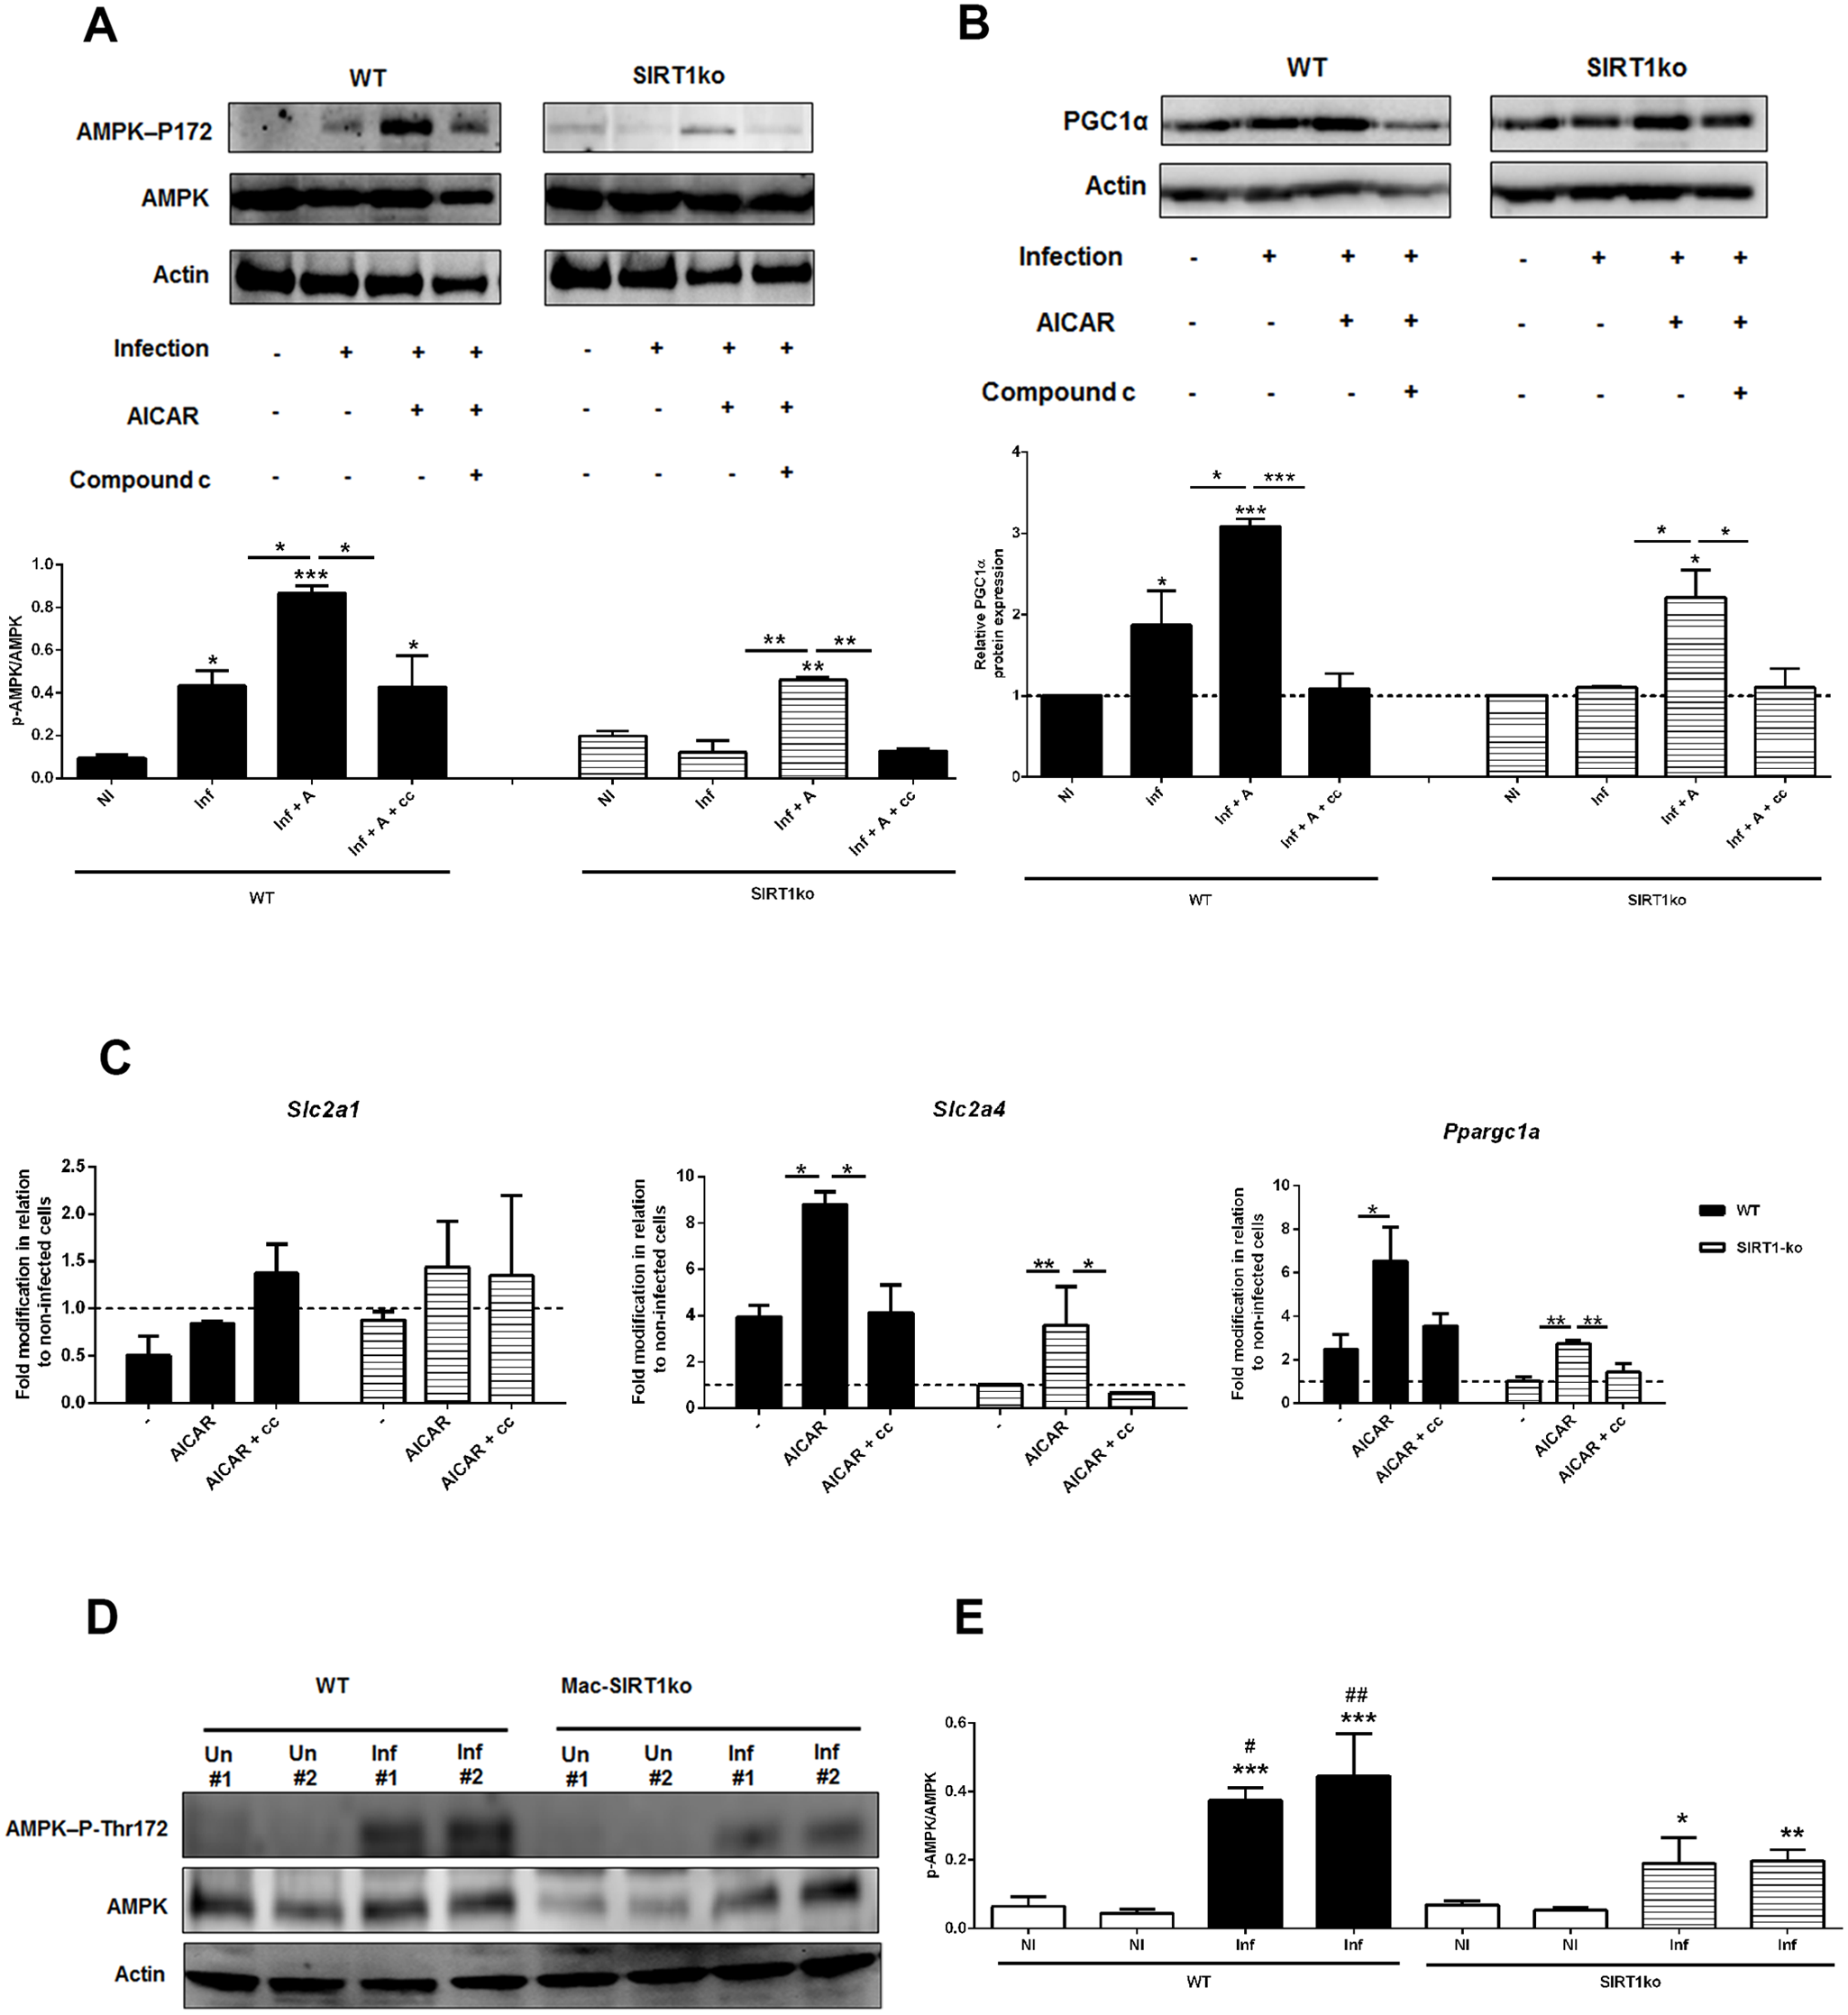 AMPK acts downstream SIRT1 in <i>Leishmania</i>-infected macrophages.